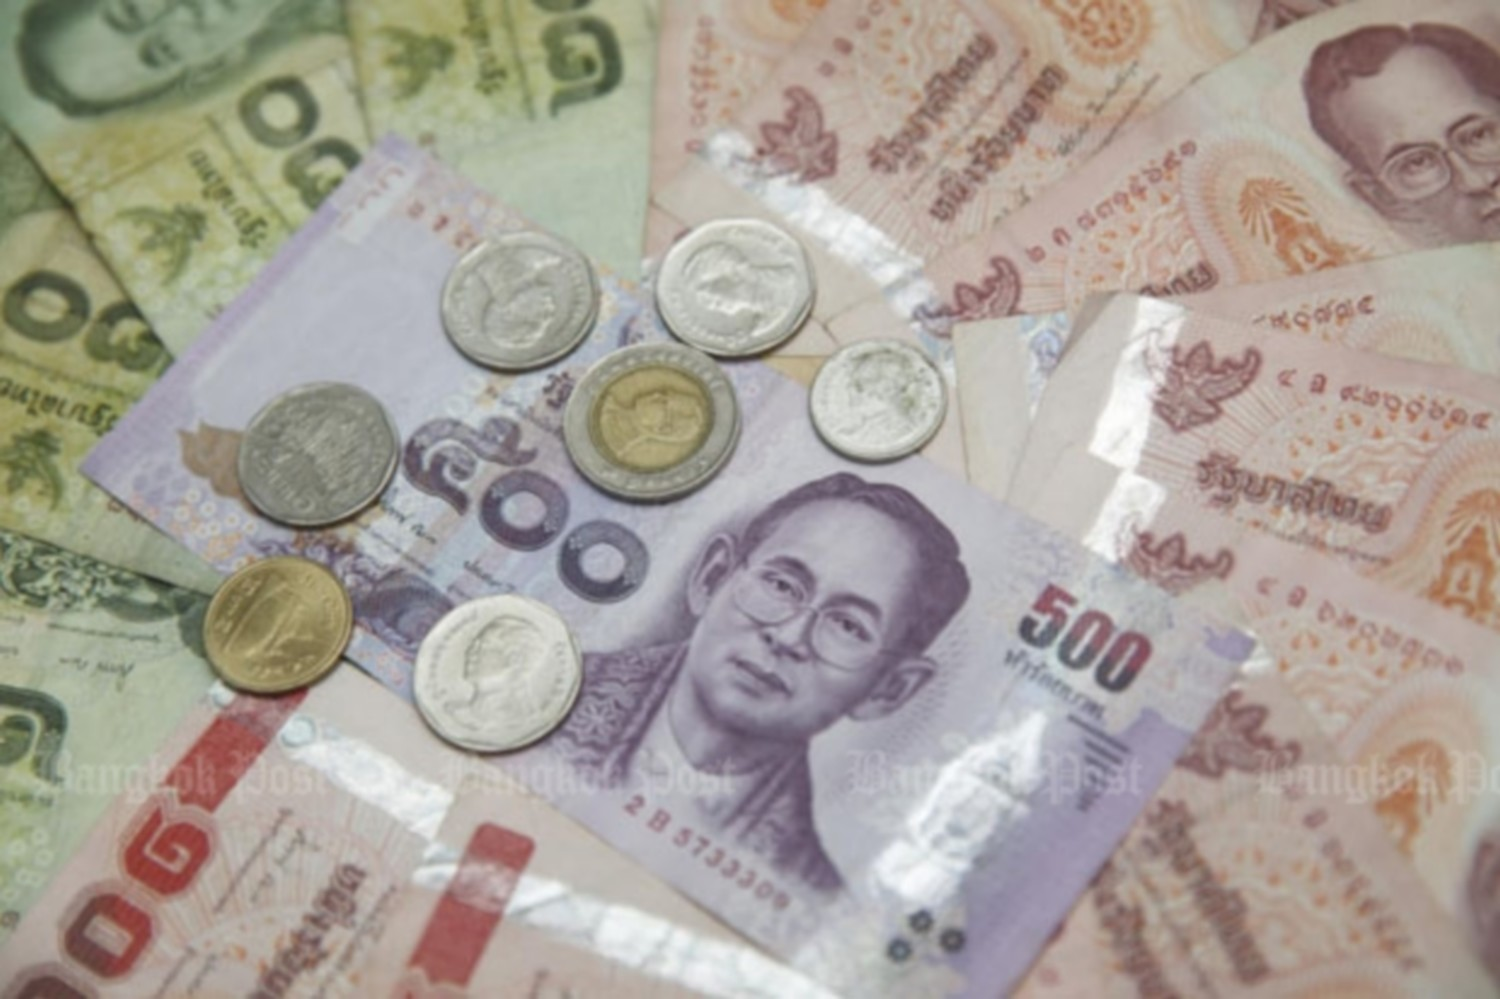 B50bn govt savings bonds offer to fund Covid relief schemes